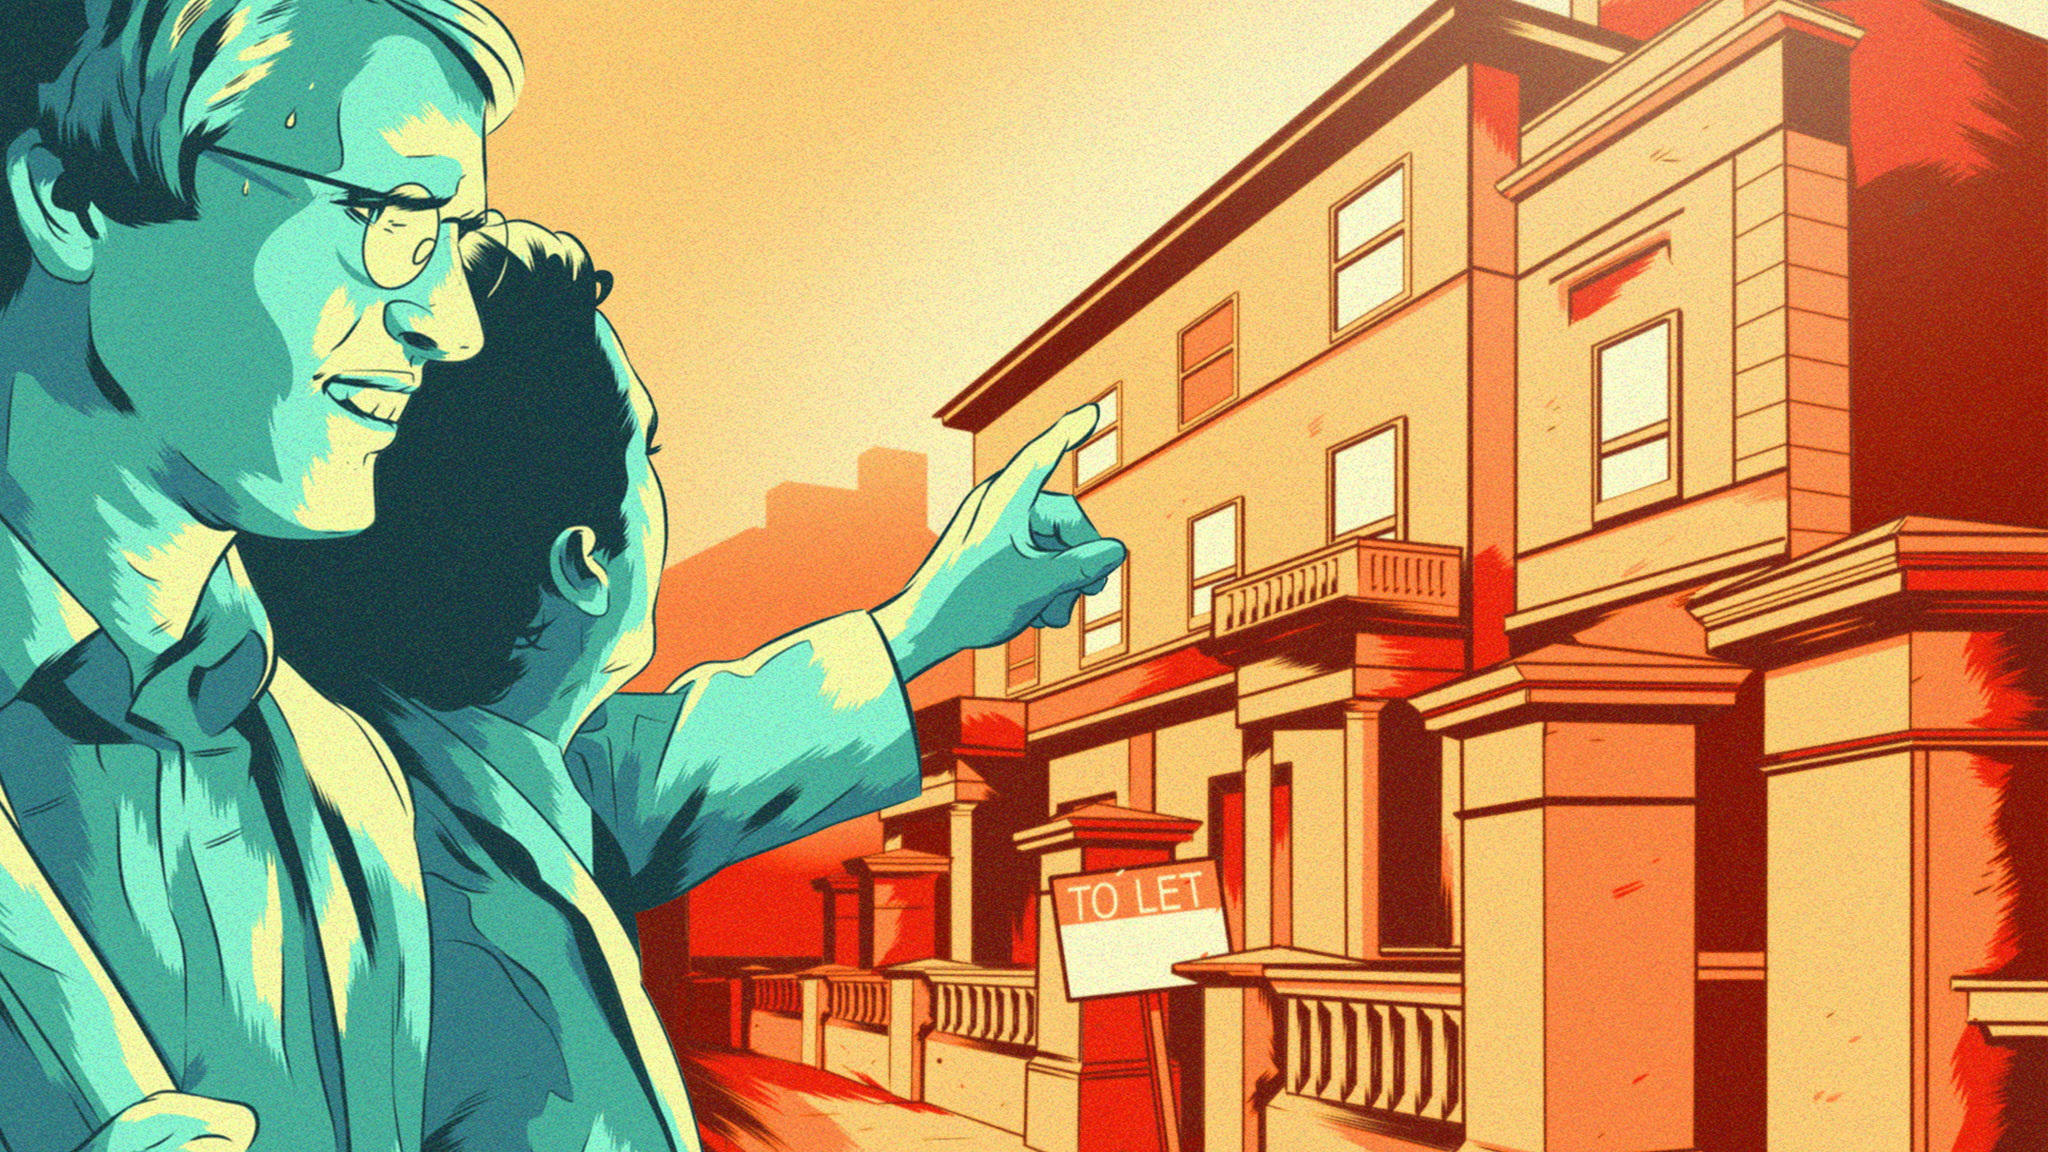 generation rent s lament the fight to find decent digs in london